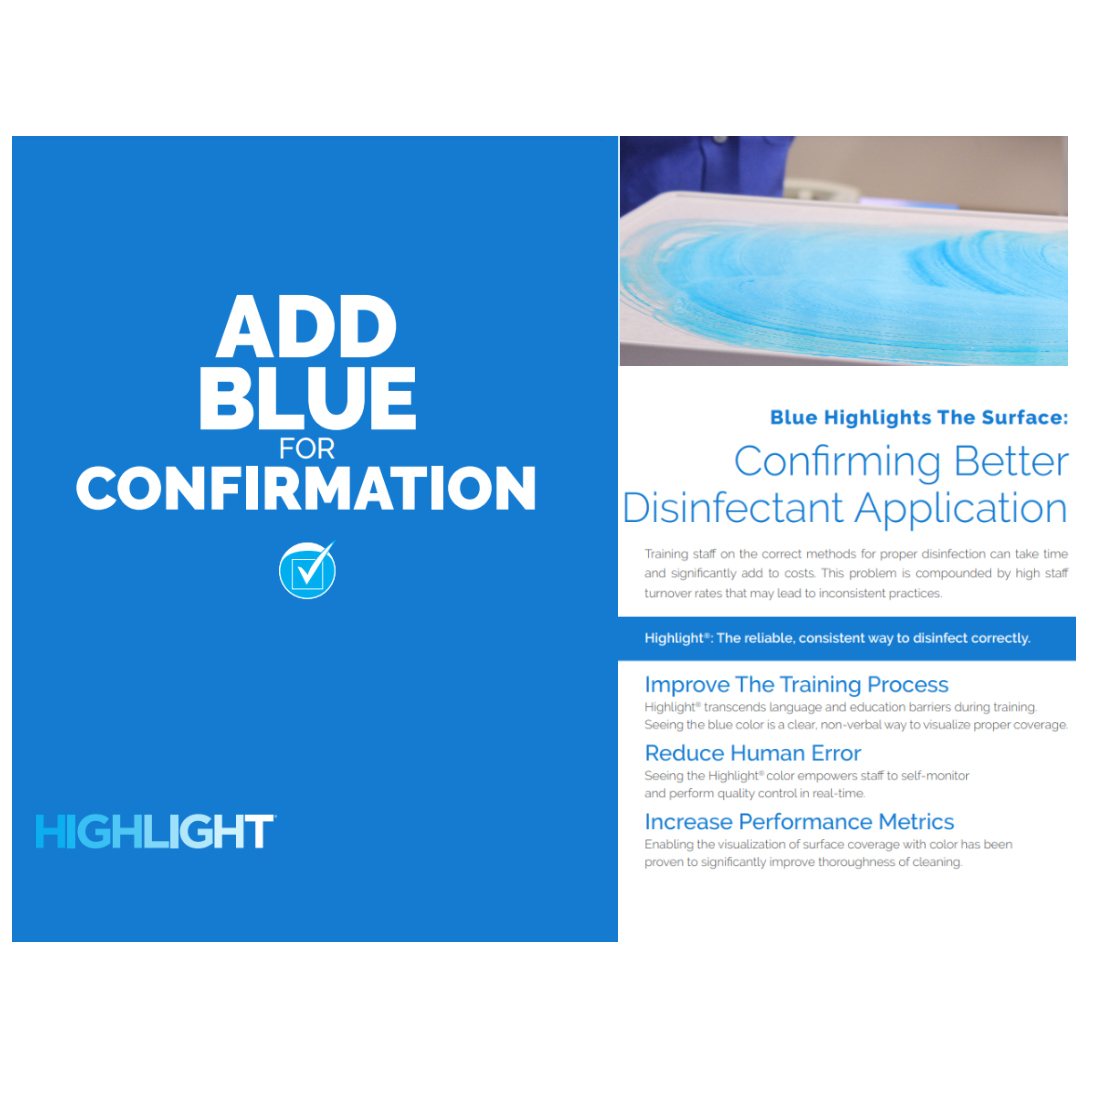 Kinnos Highlight Disinfection Application image